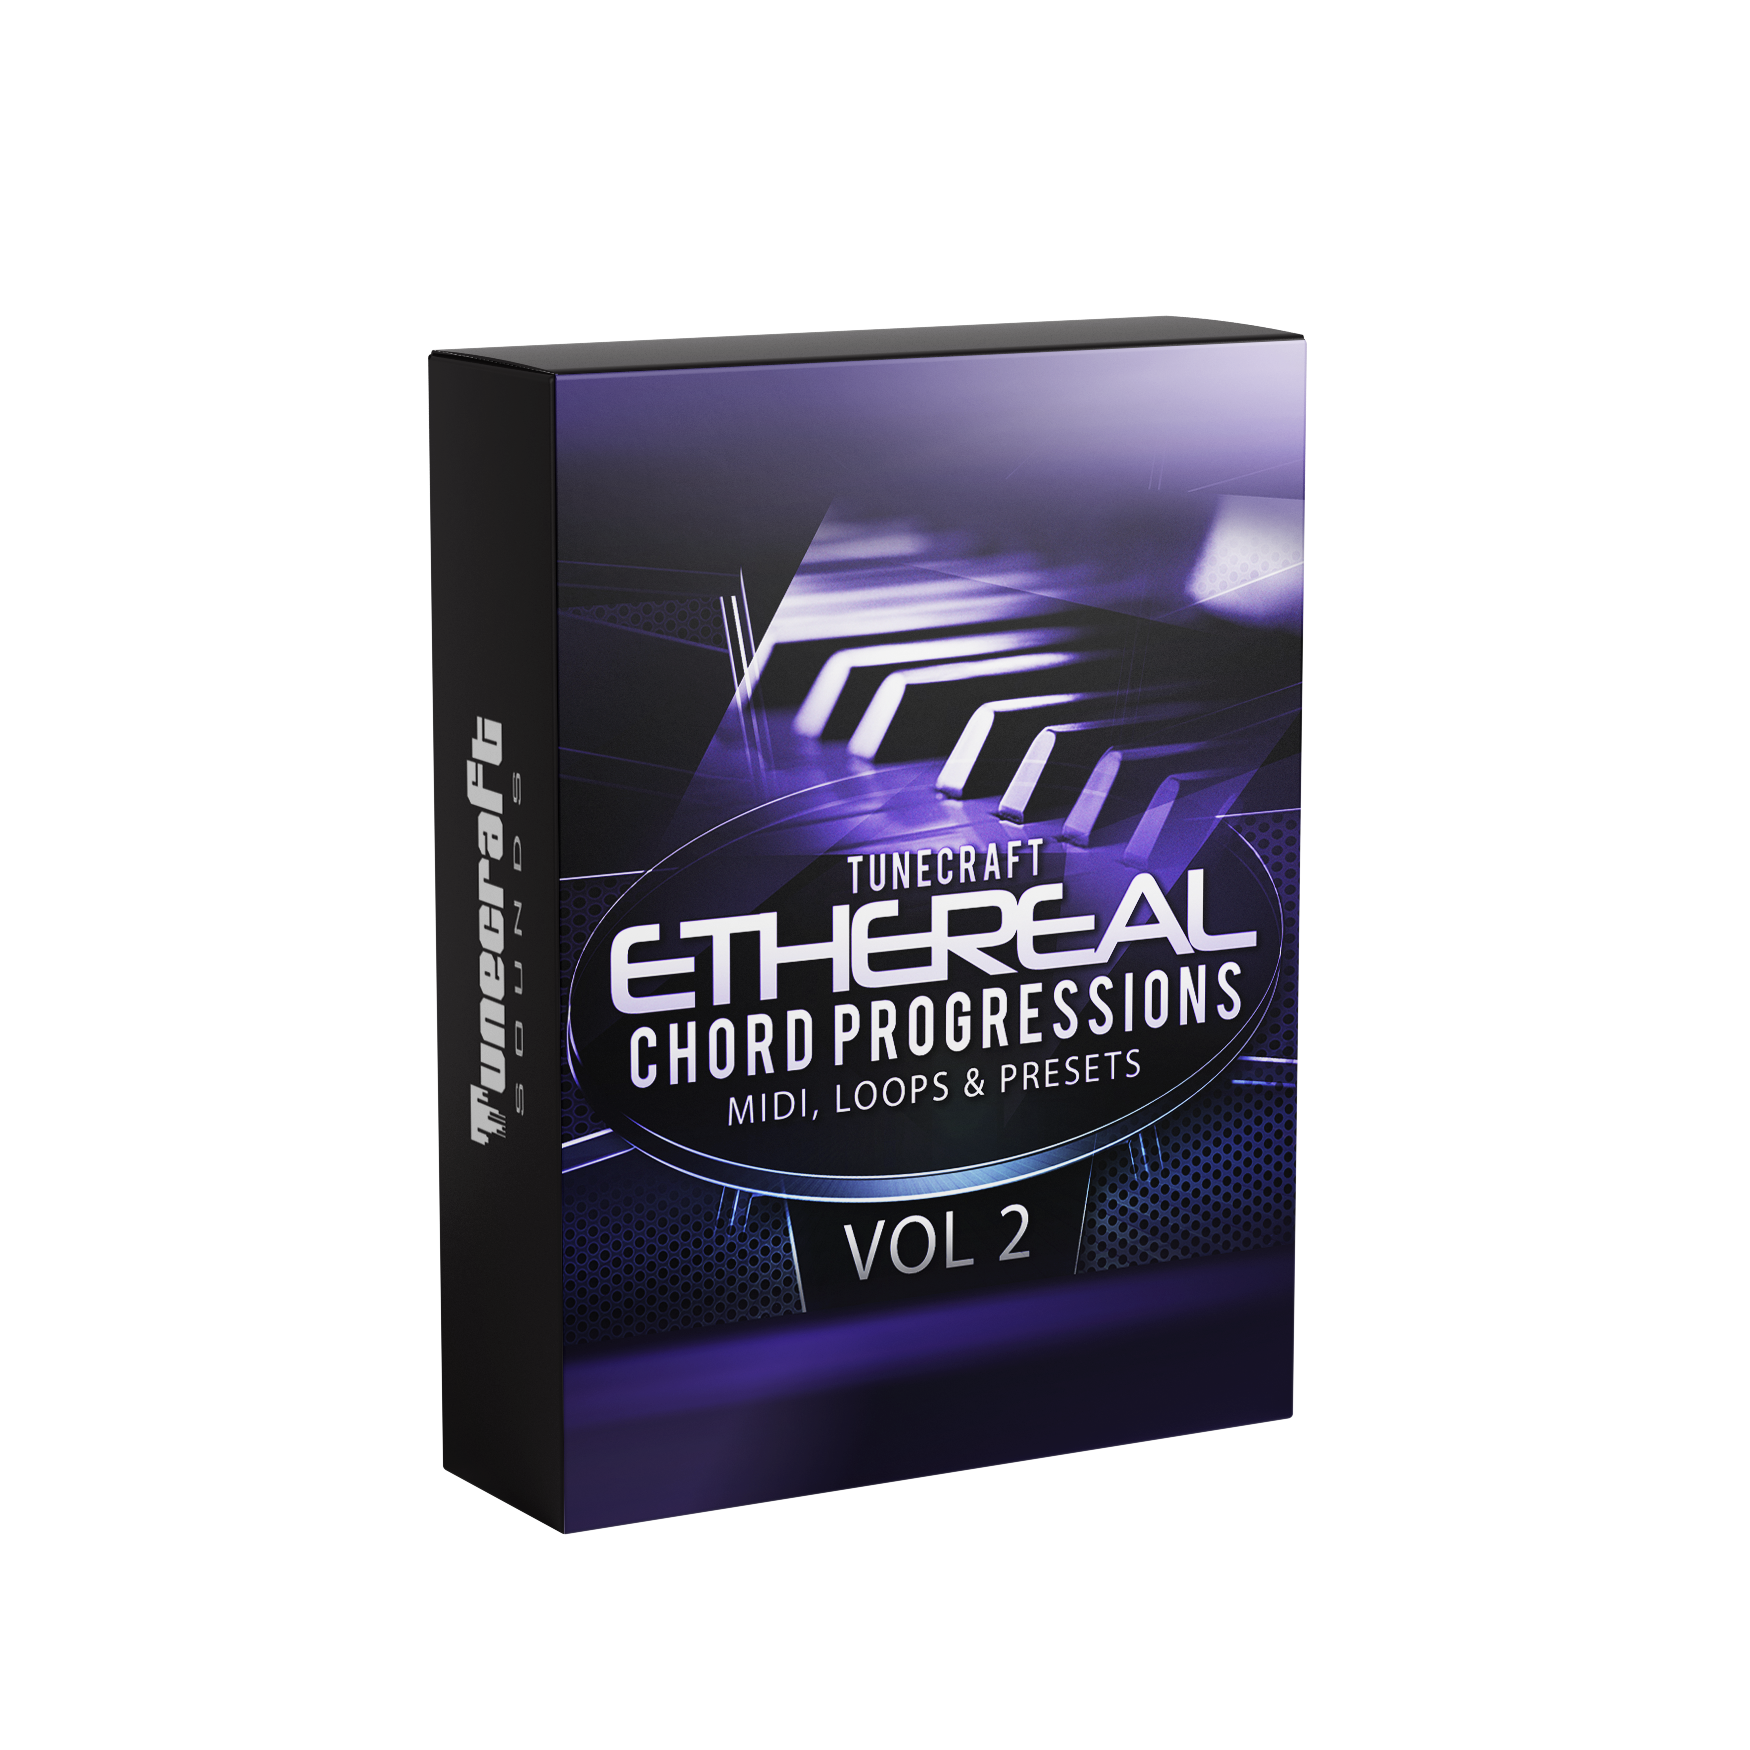 Ethereal-Chords-v2-3Dbox-NS